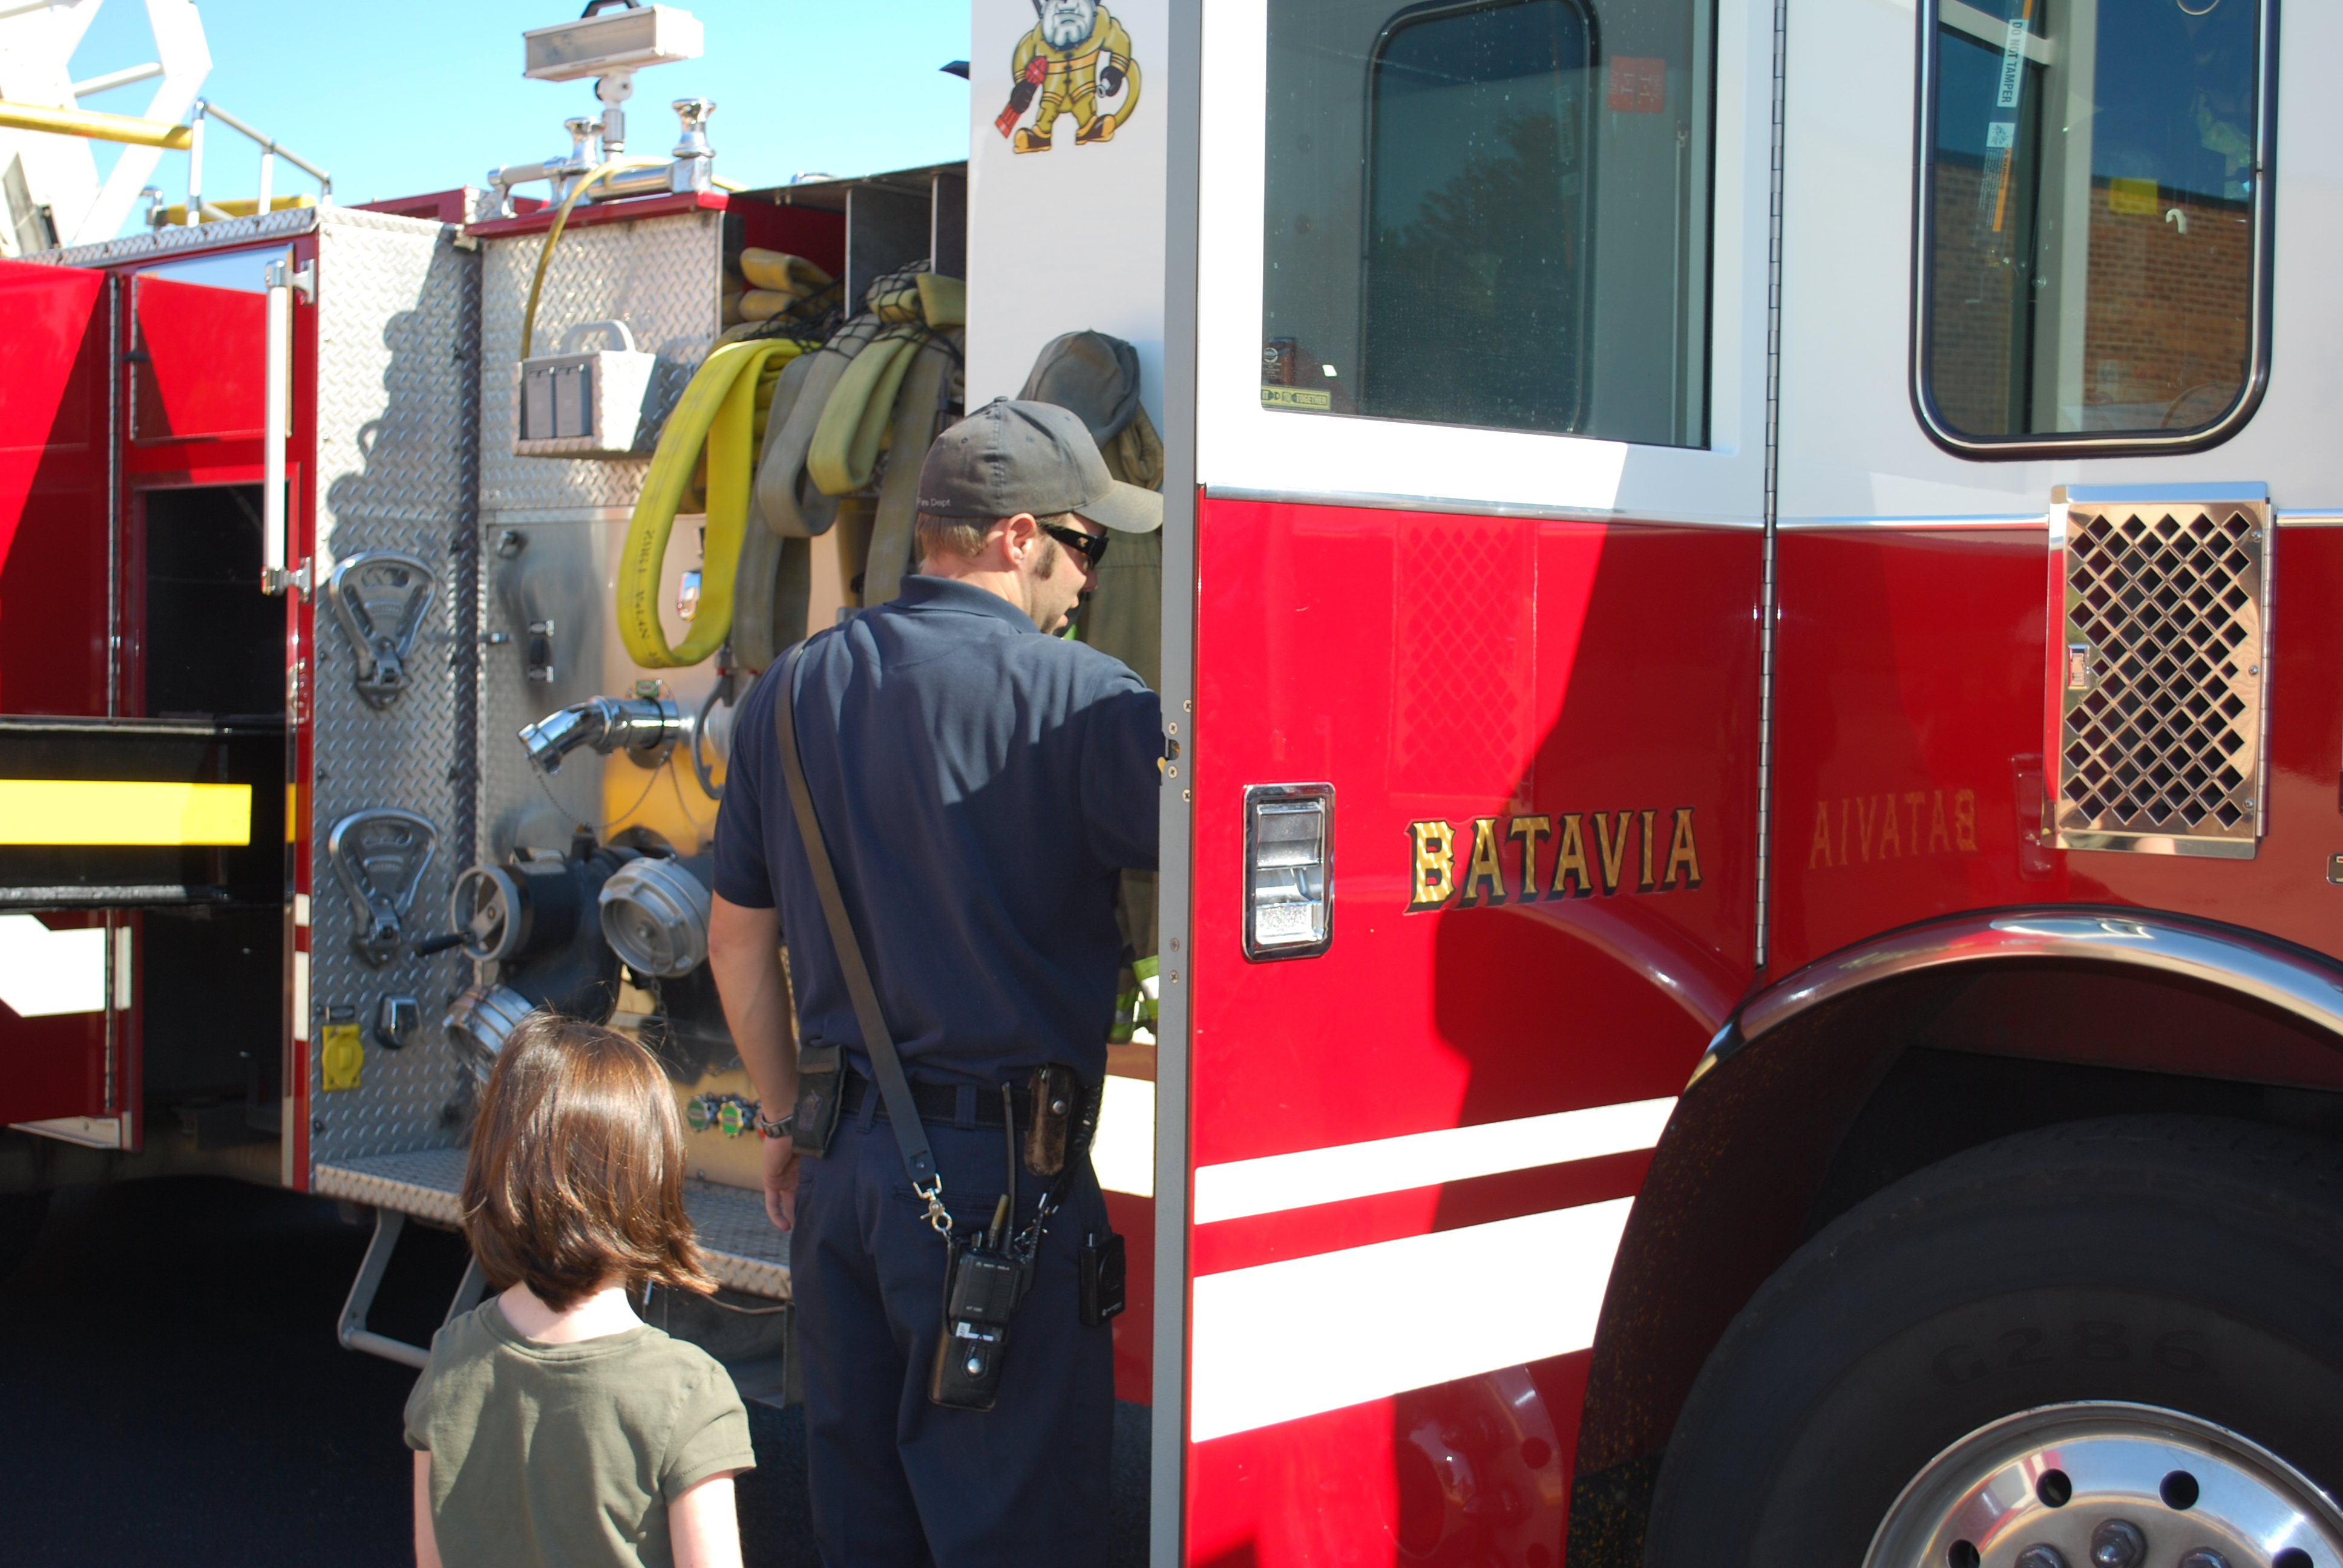 storm-school-batavia-lunchtime-play-and-firetrucks-035